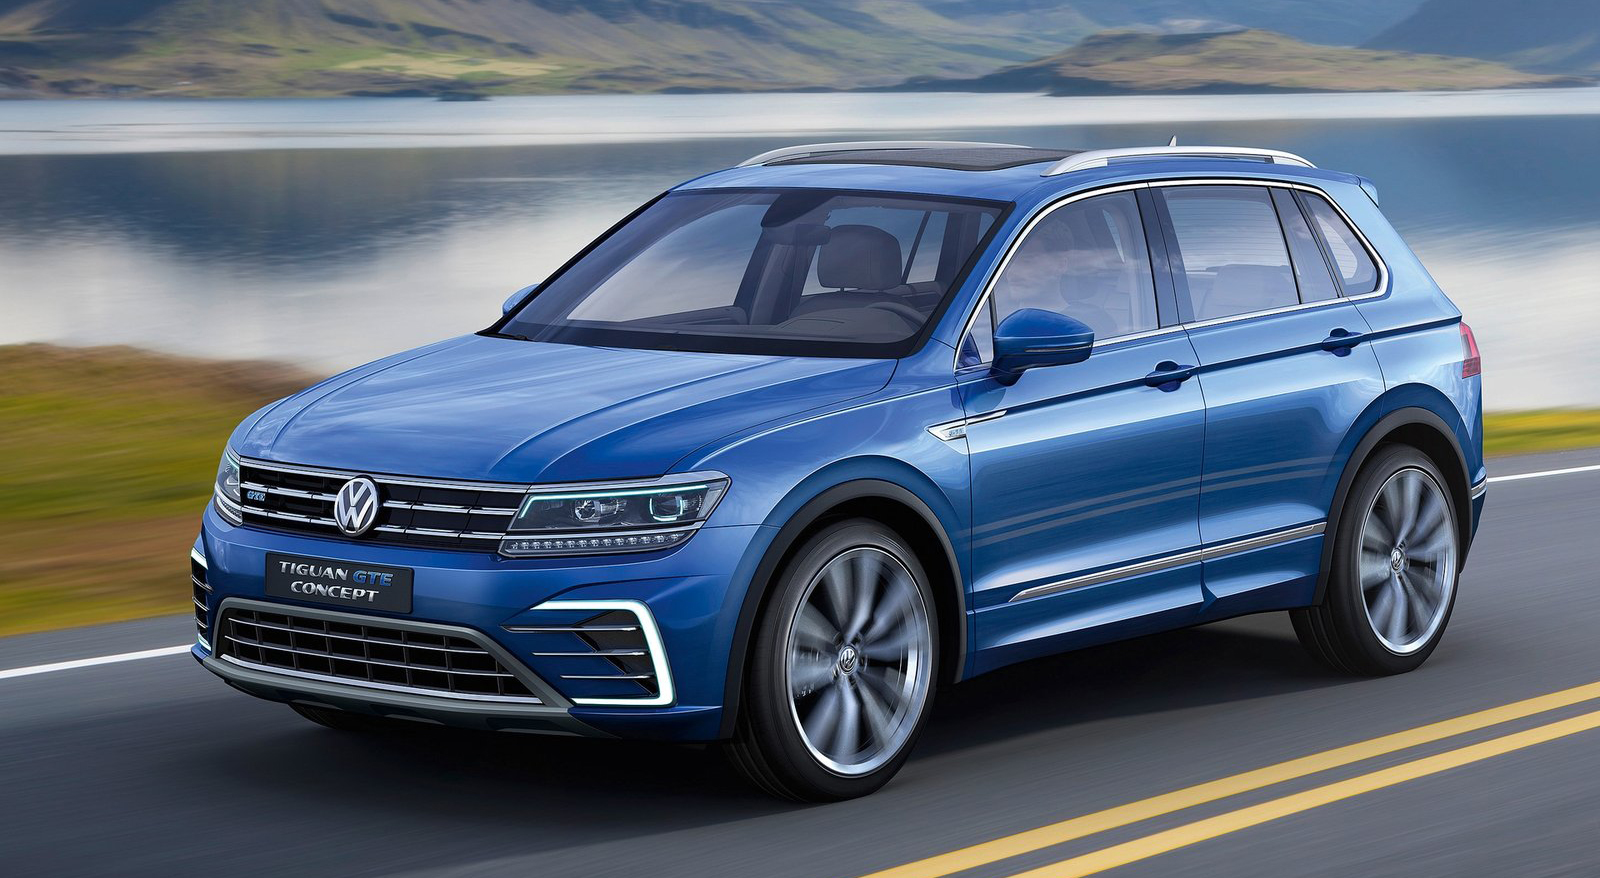 frankfurt 2015 volkswagen tiguan gte plug in hybrid. Black Bedroom Furniture Sets. Home Design Ideas